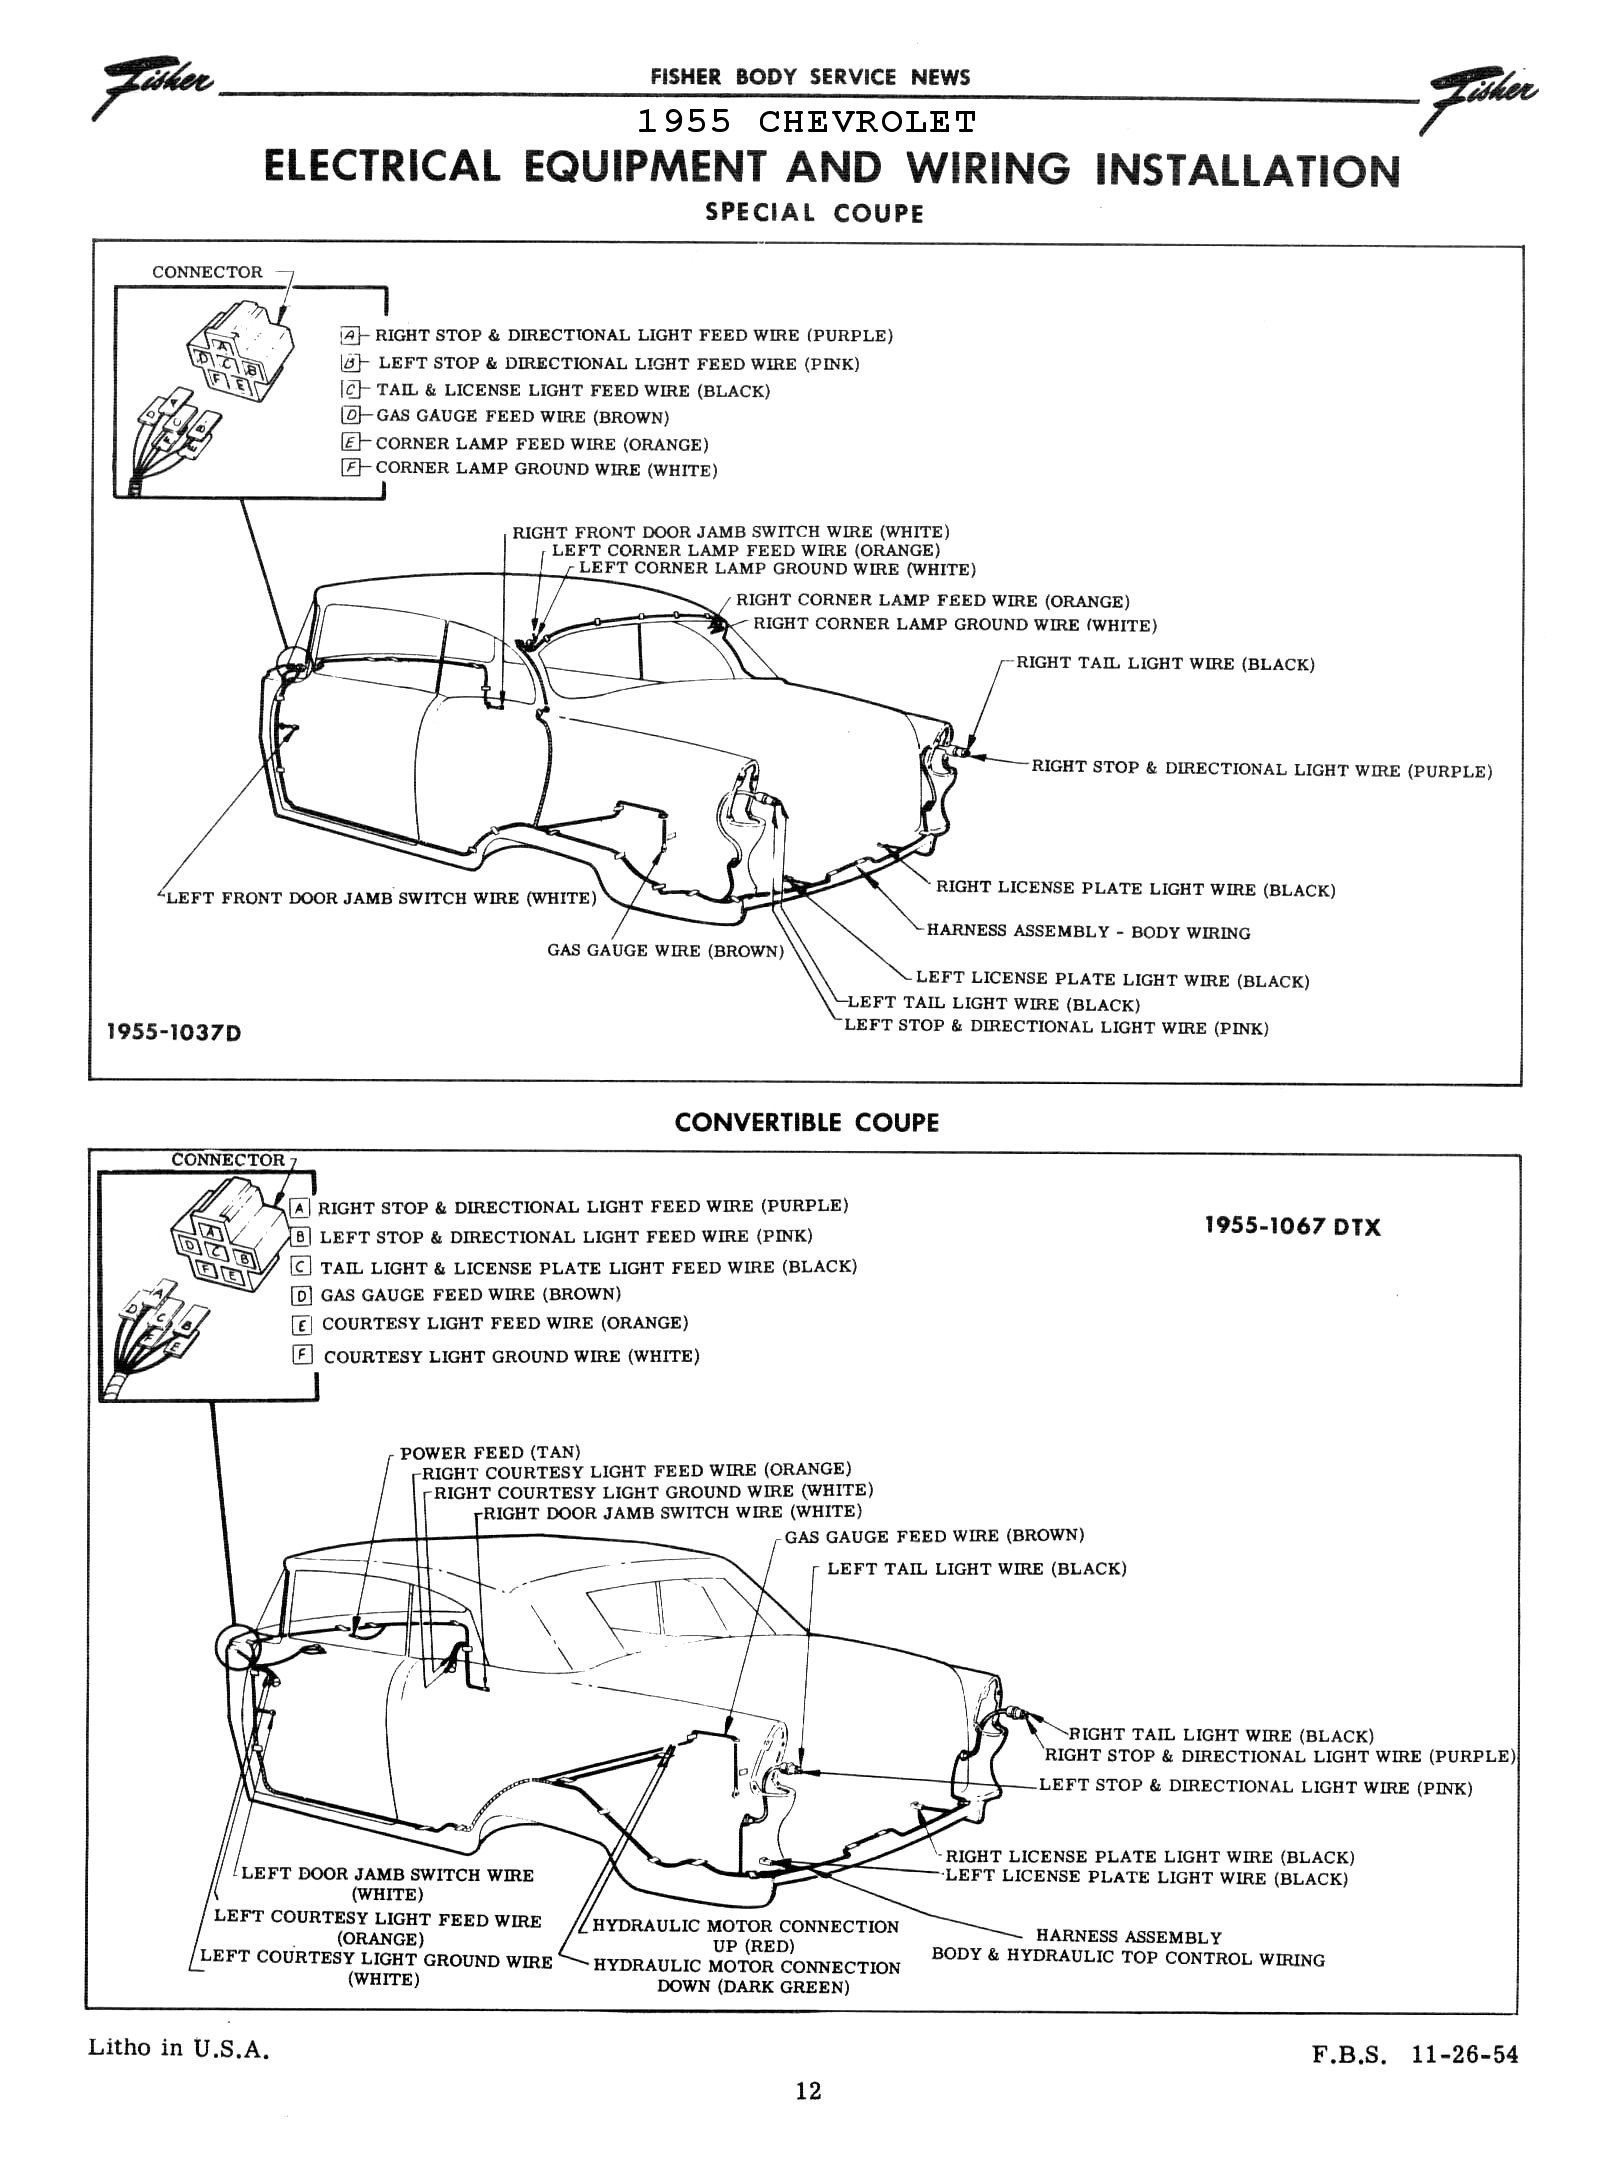 55fsn140612 chevy wiring diagrams 1954 chevrolet wiring diagram at edmiracle.co